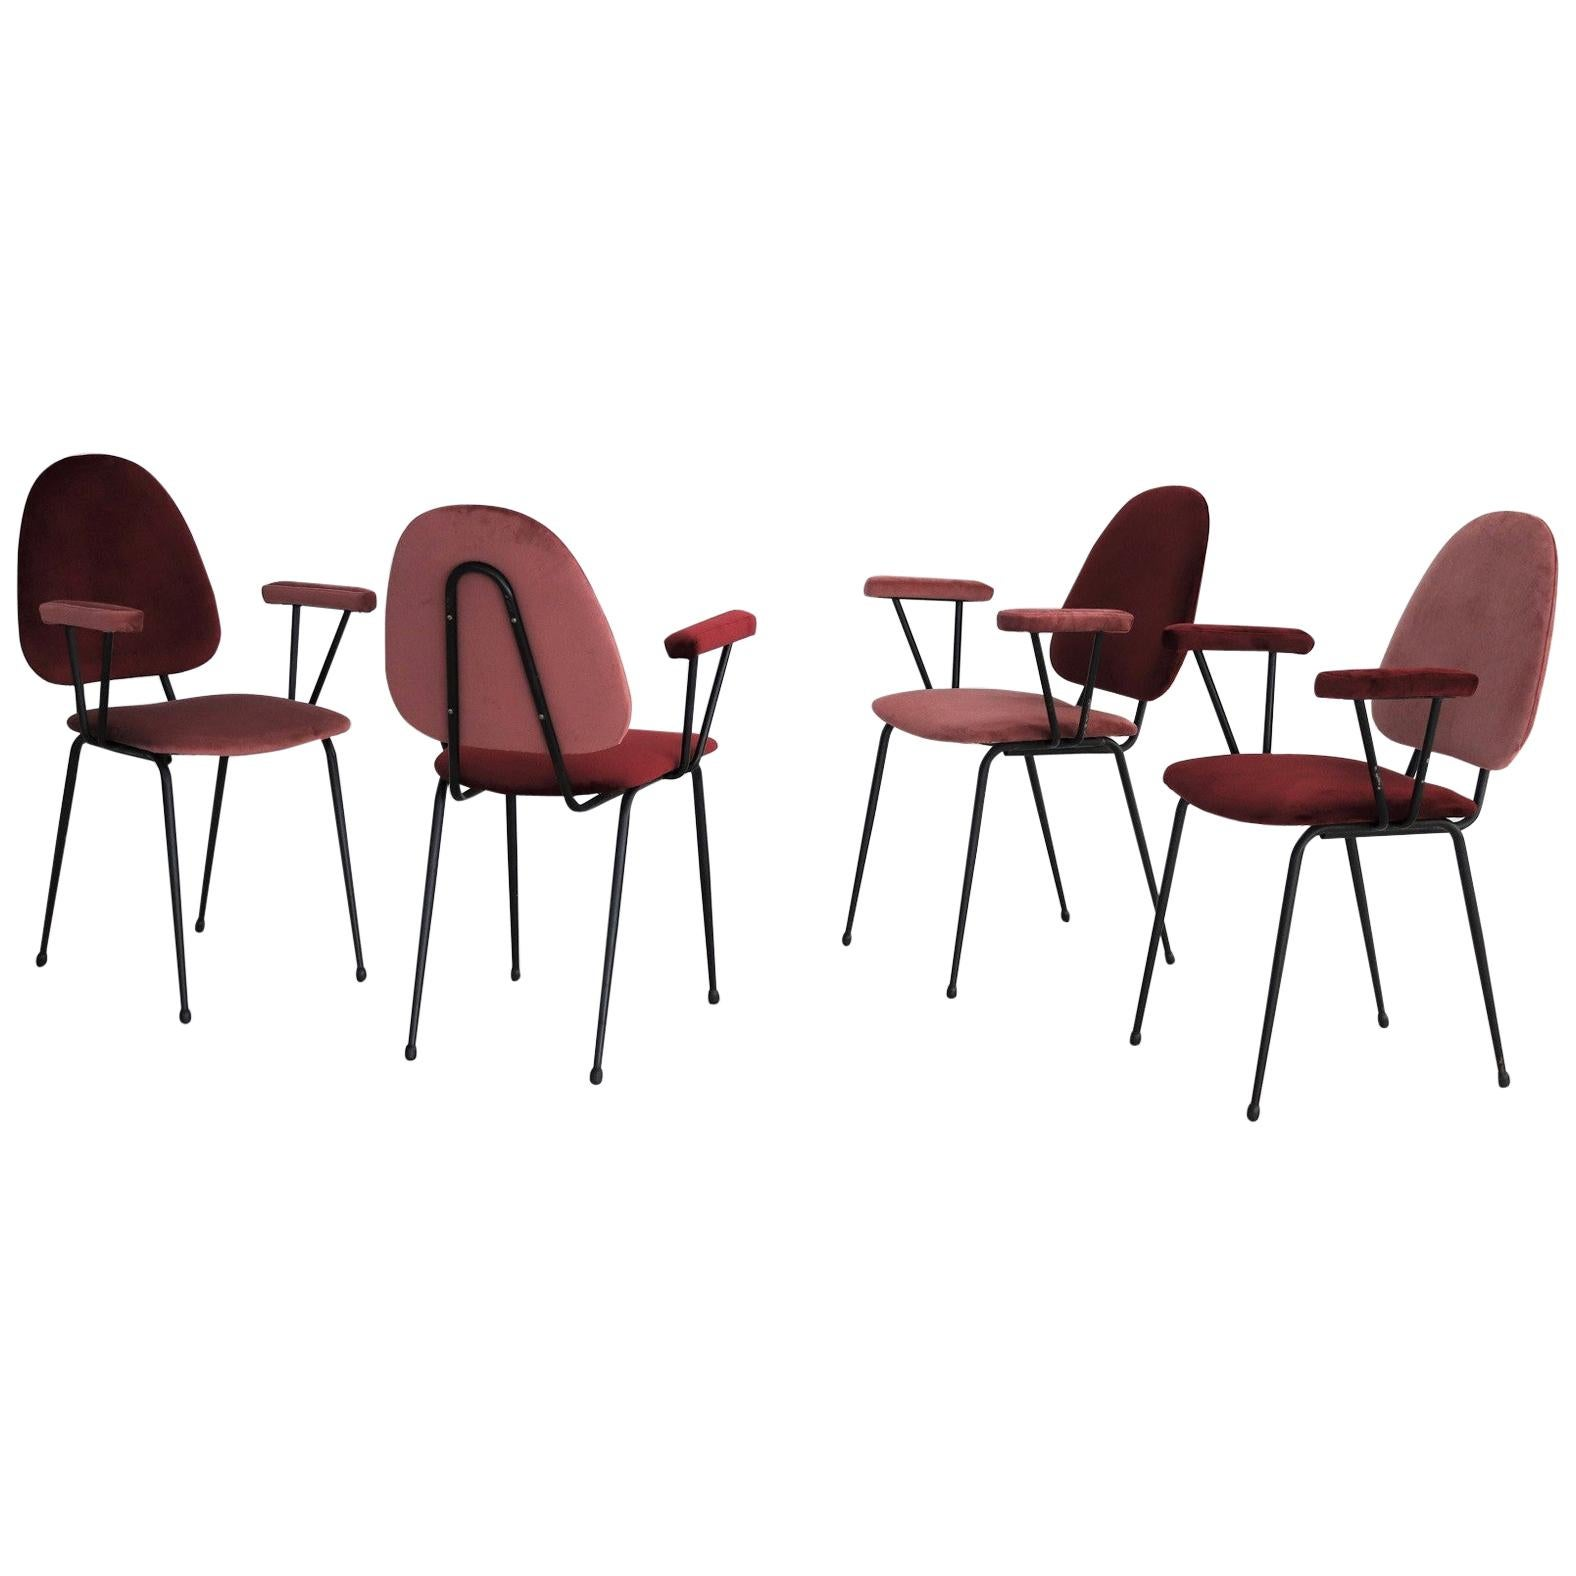 Italian Midcentury Vintage Dining Chairs in Metal and Coral Red Velvet, 1950s